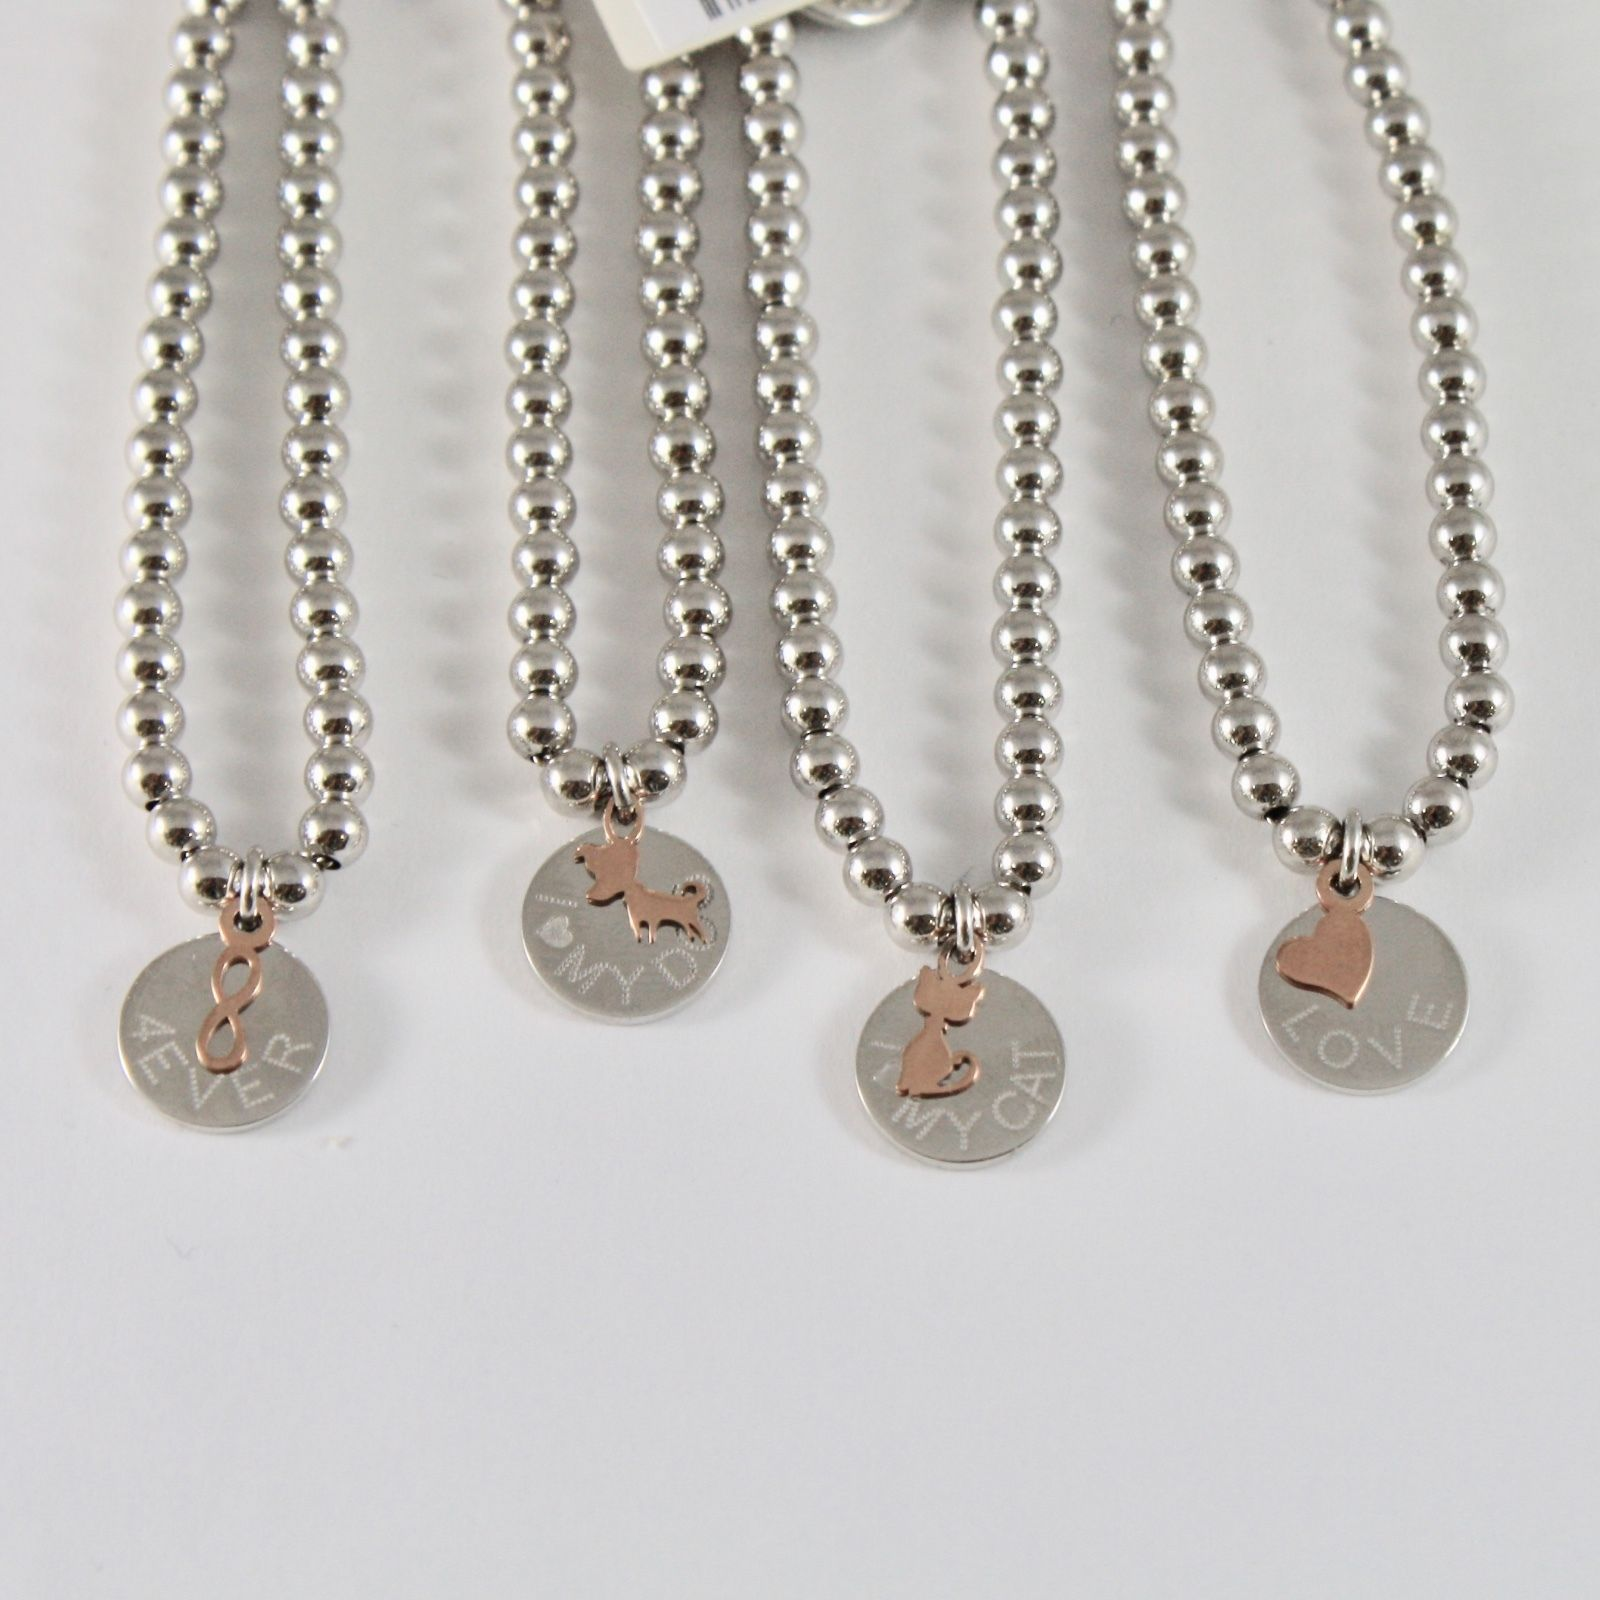 SILVER 925 BRACELET JACK&CO WITH BEADS SHINY AND PENDANT GOLD PINK 9 CARATS